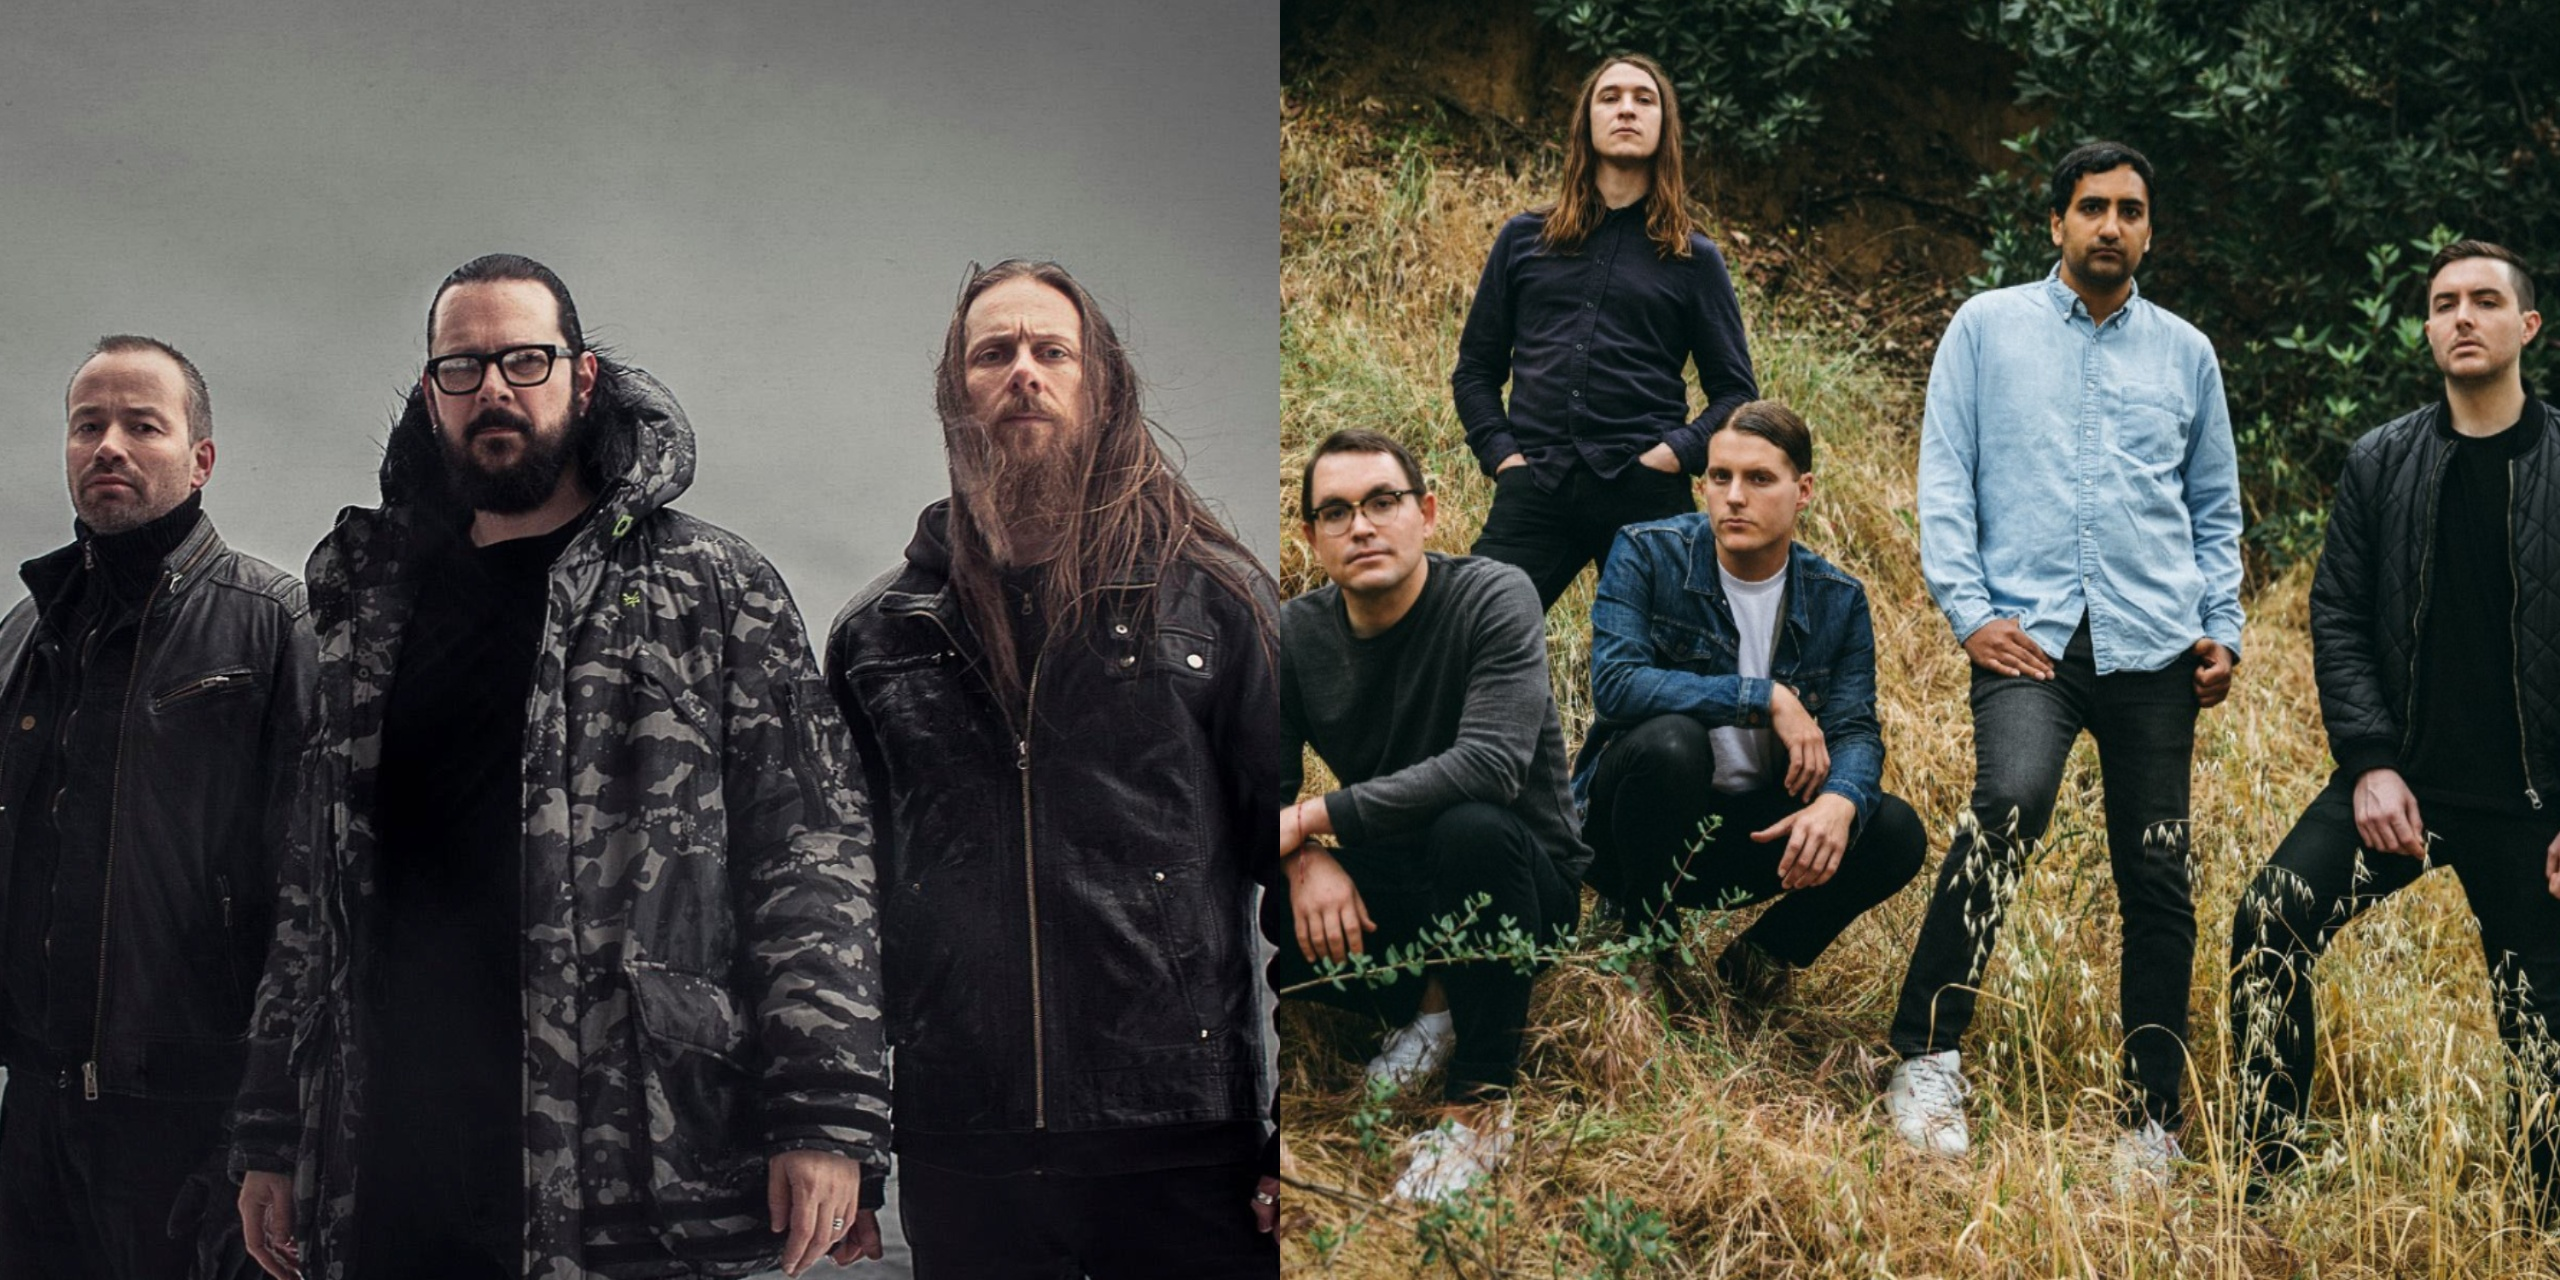 Emperor and Deafheaven announce Japan tour